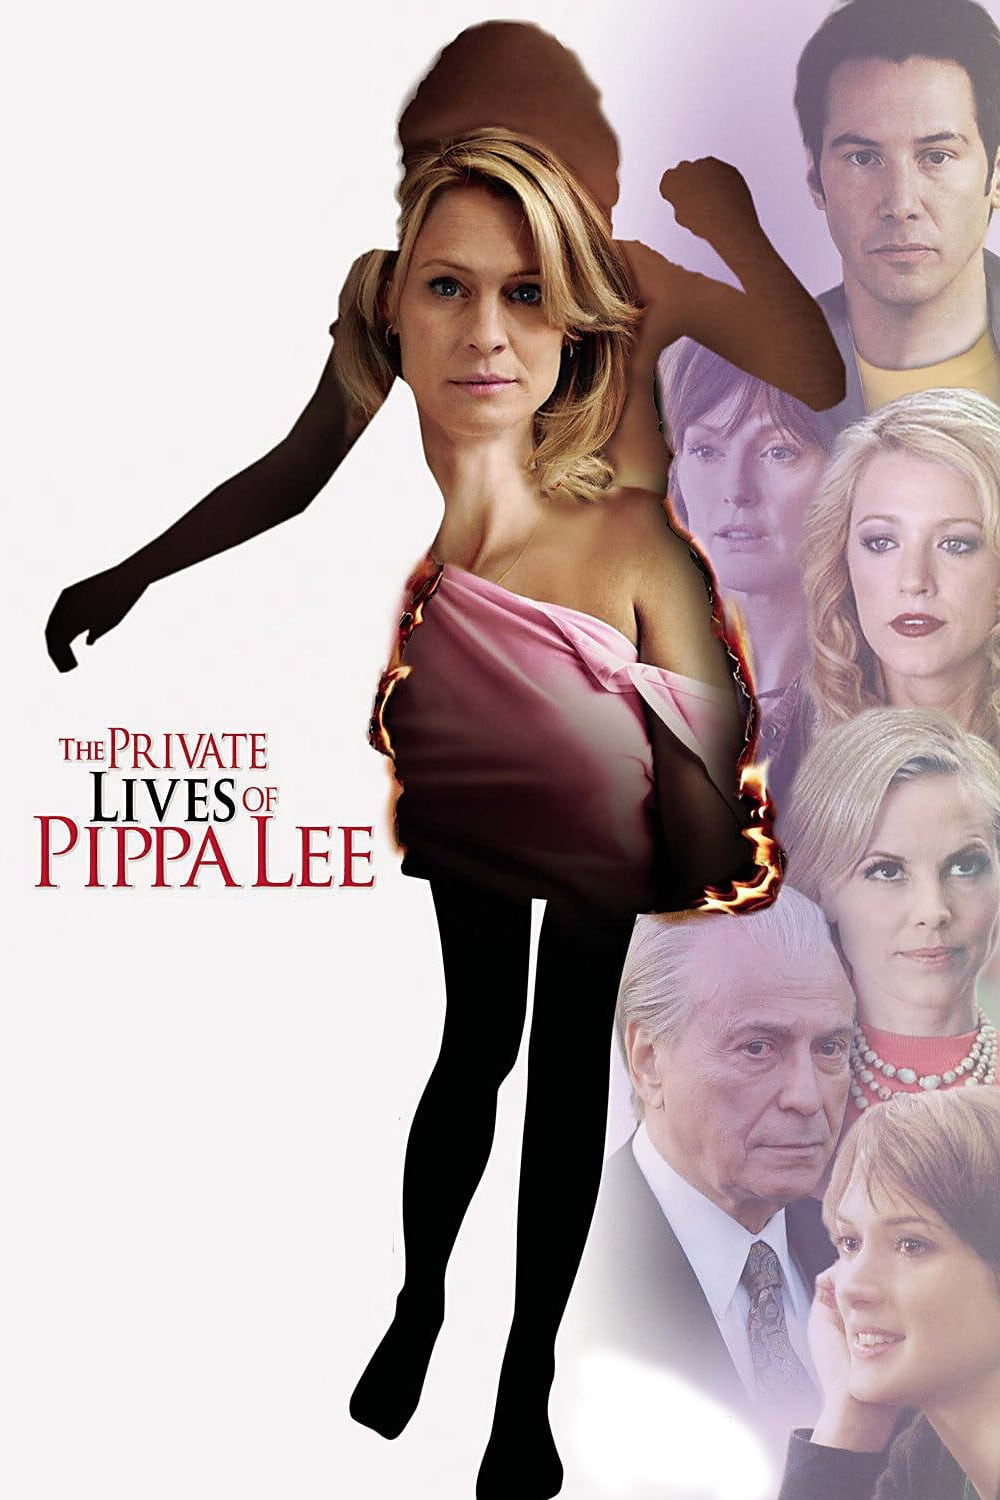 The Private Lives of Pippa Lee on FREECABLE TV